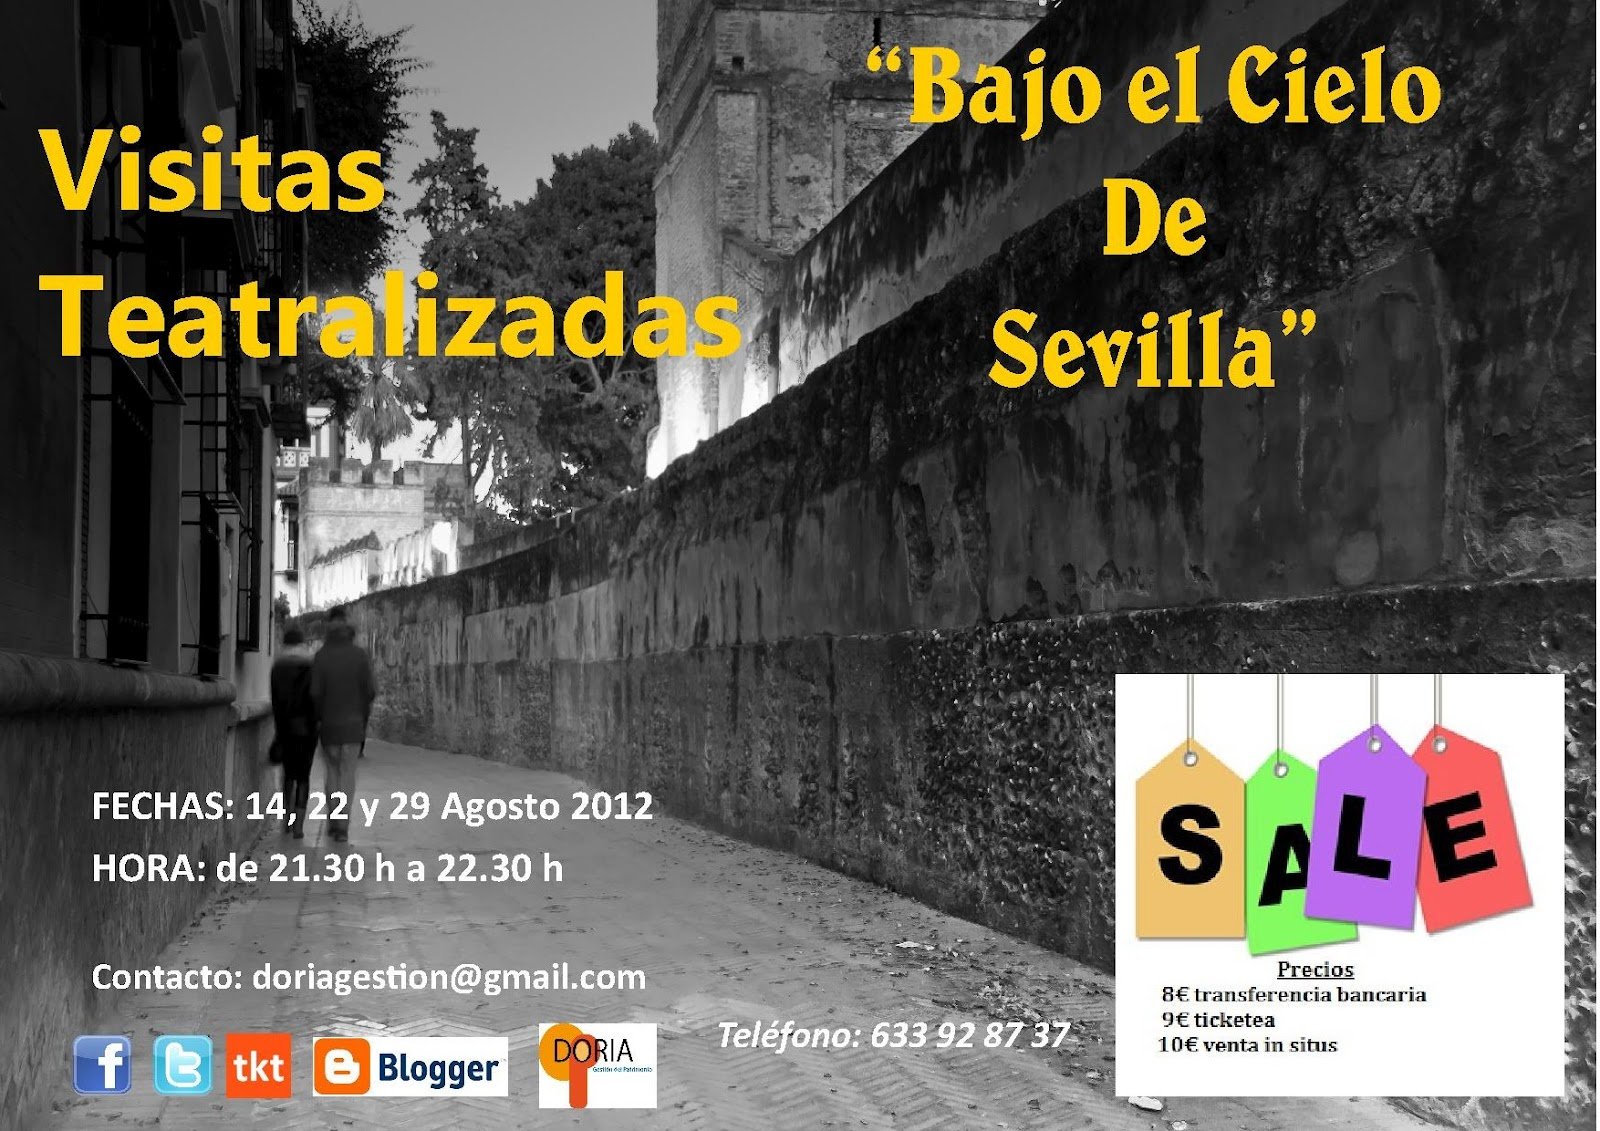 sevilla singles Get ready to discover the most emblematic places of the city, its history and secrets, in our free tour through monumental sevilla we do this tour 3 times every day, with different meeting points, so feel free to join the one that suits you more.